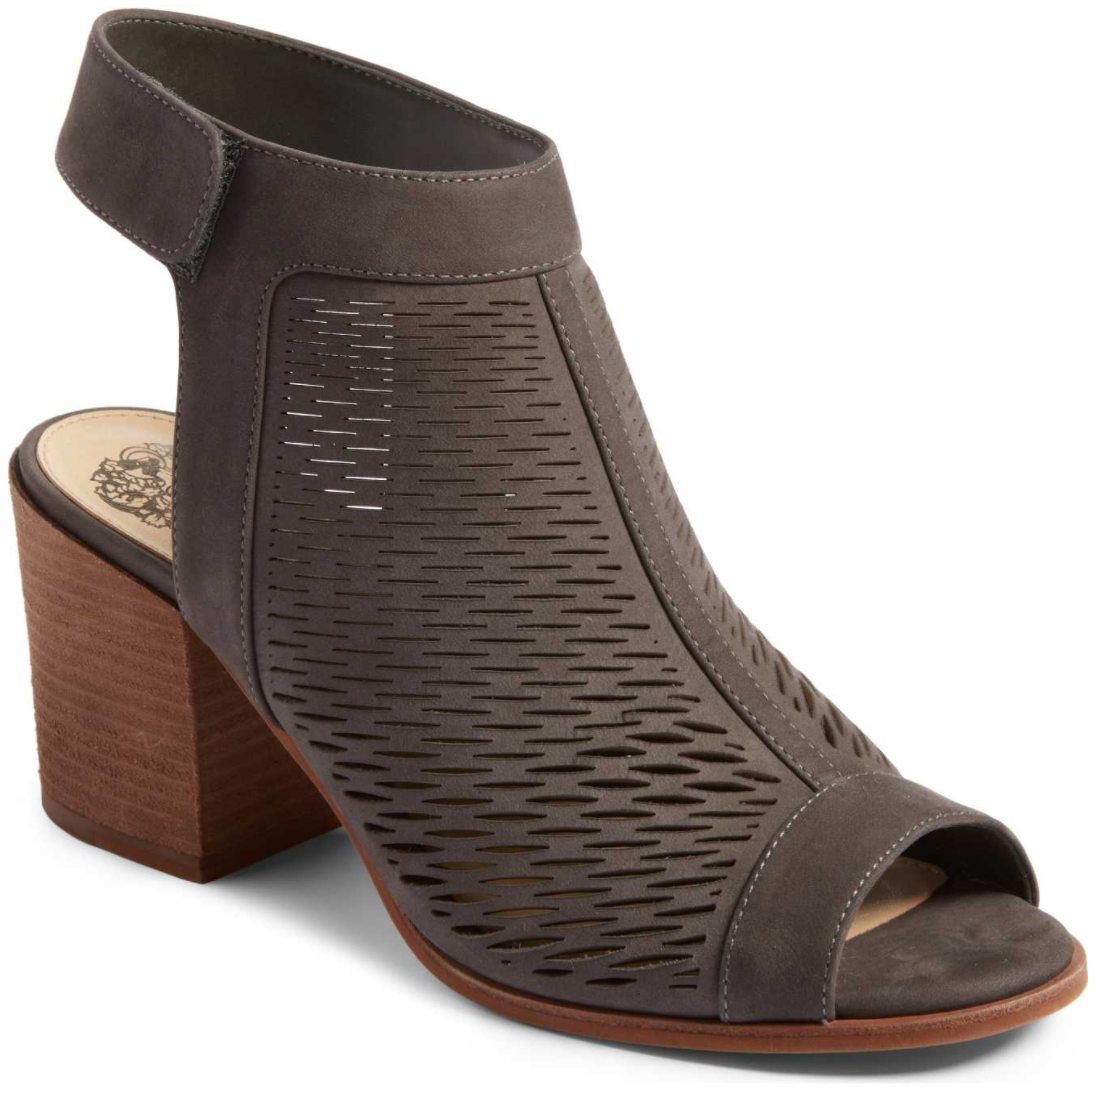 'Lavette' Perforated Peep Toe Bootie by VINCE CAMUTO